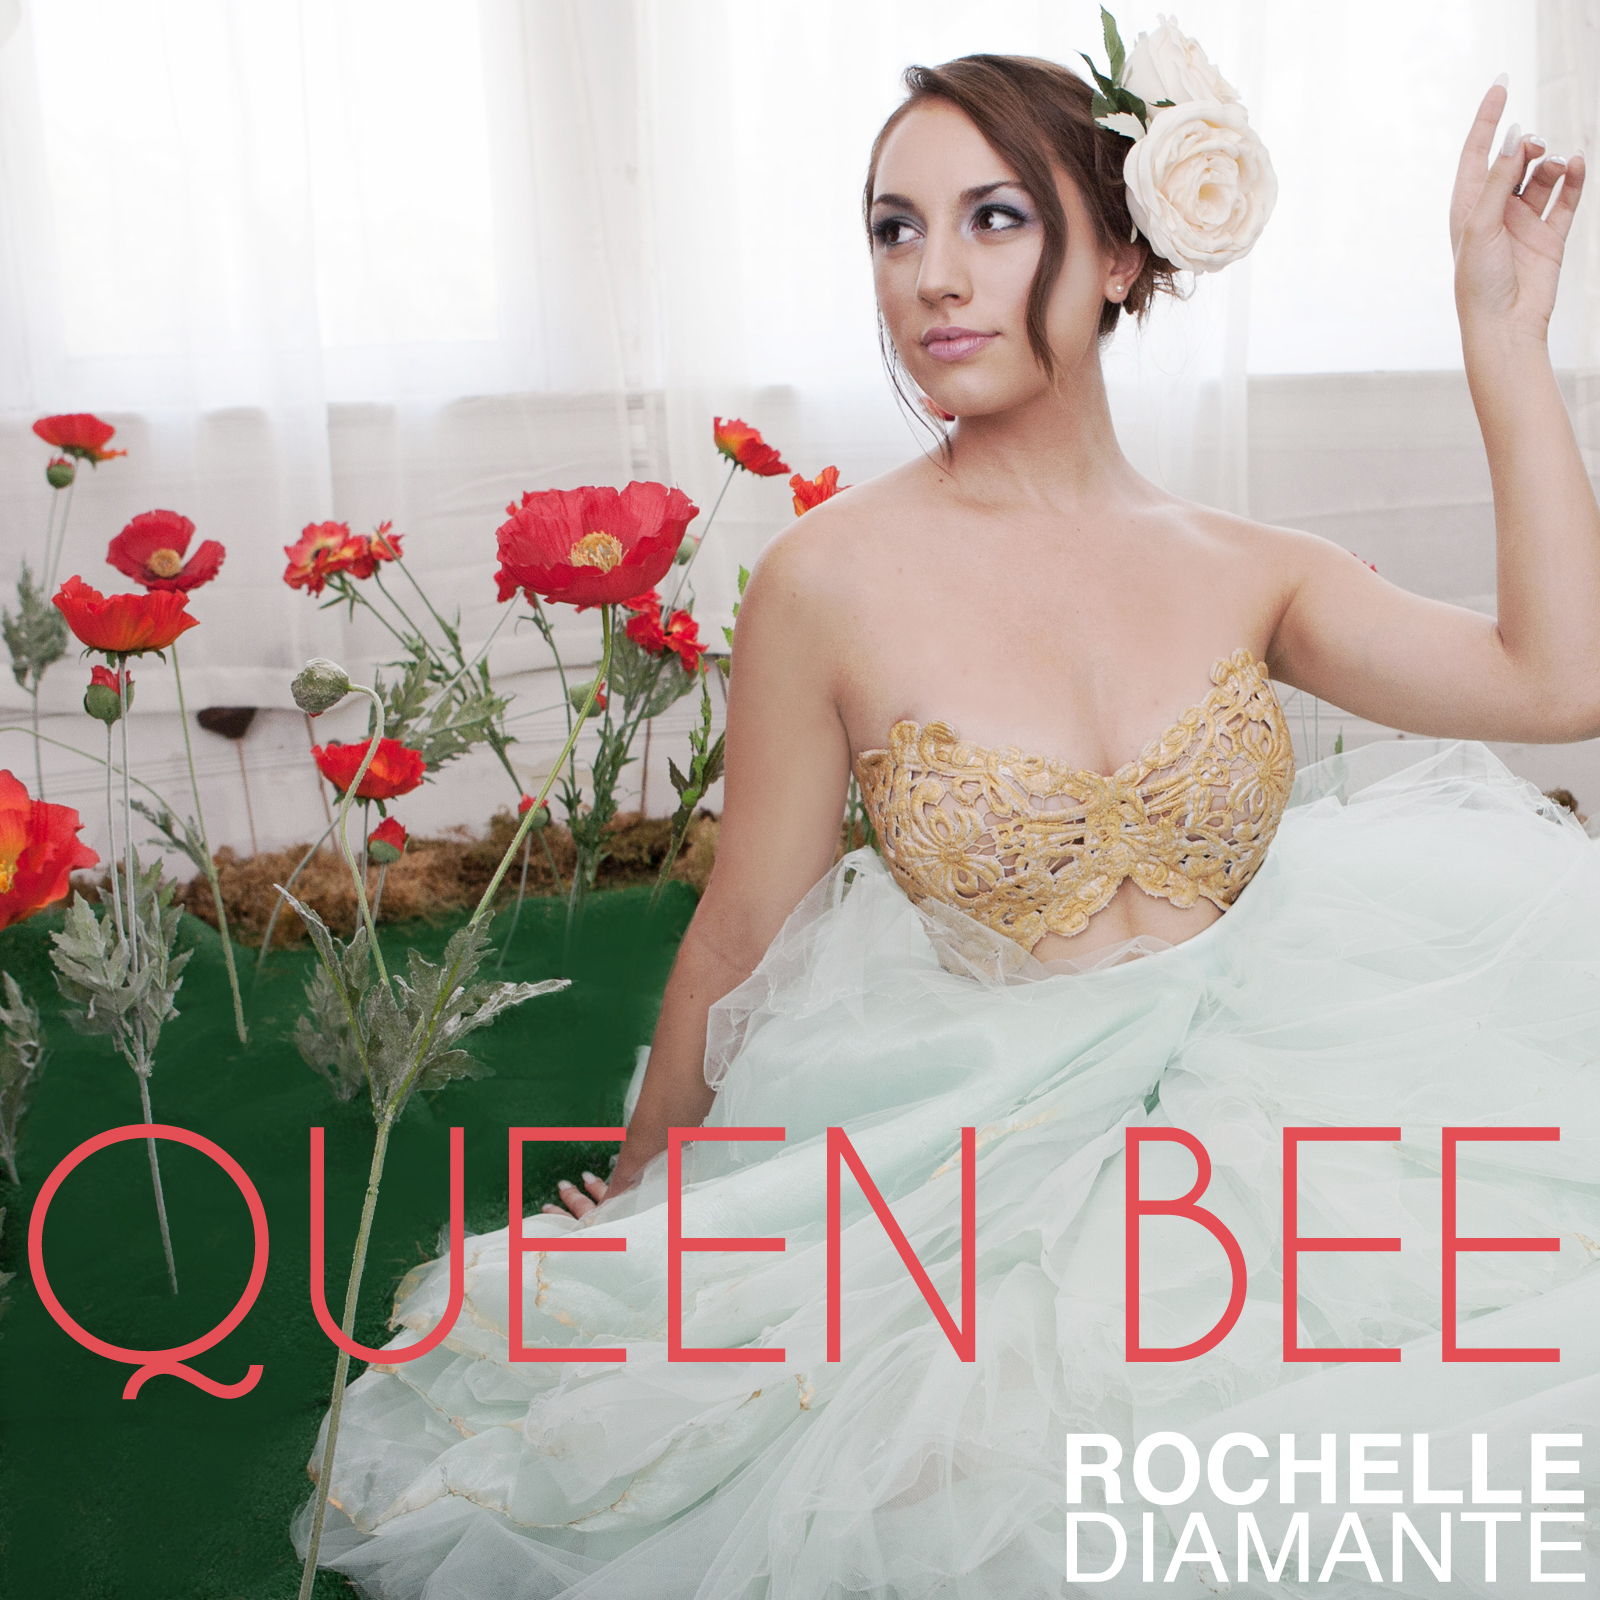 Rochelle Diamante - Queen Bee